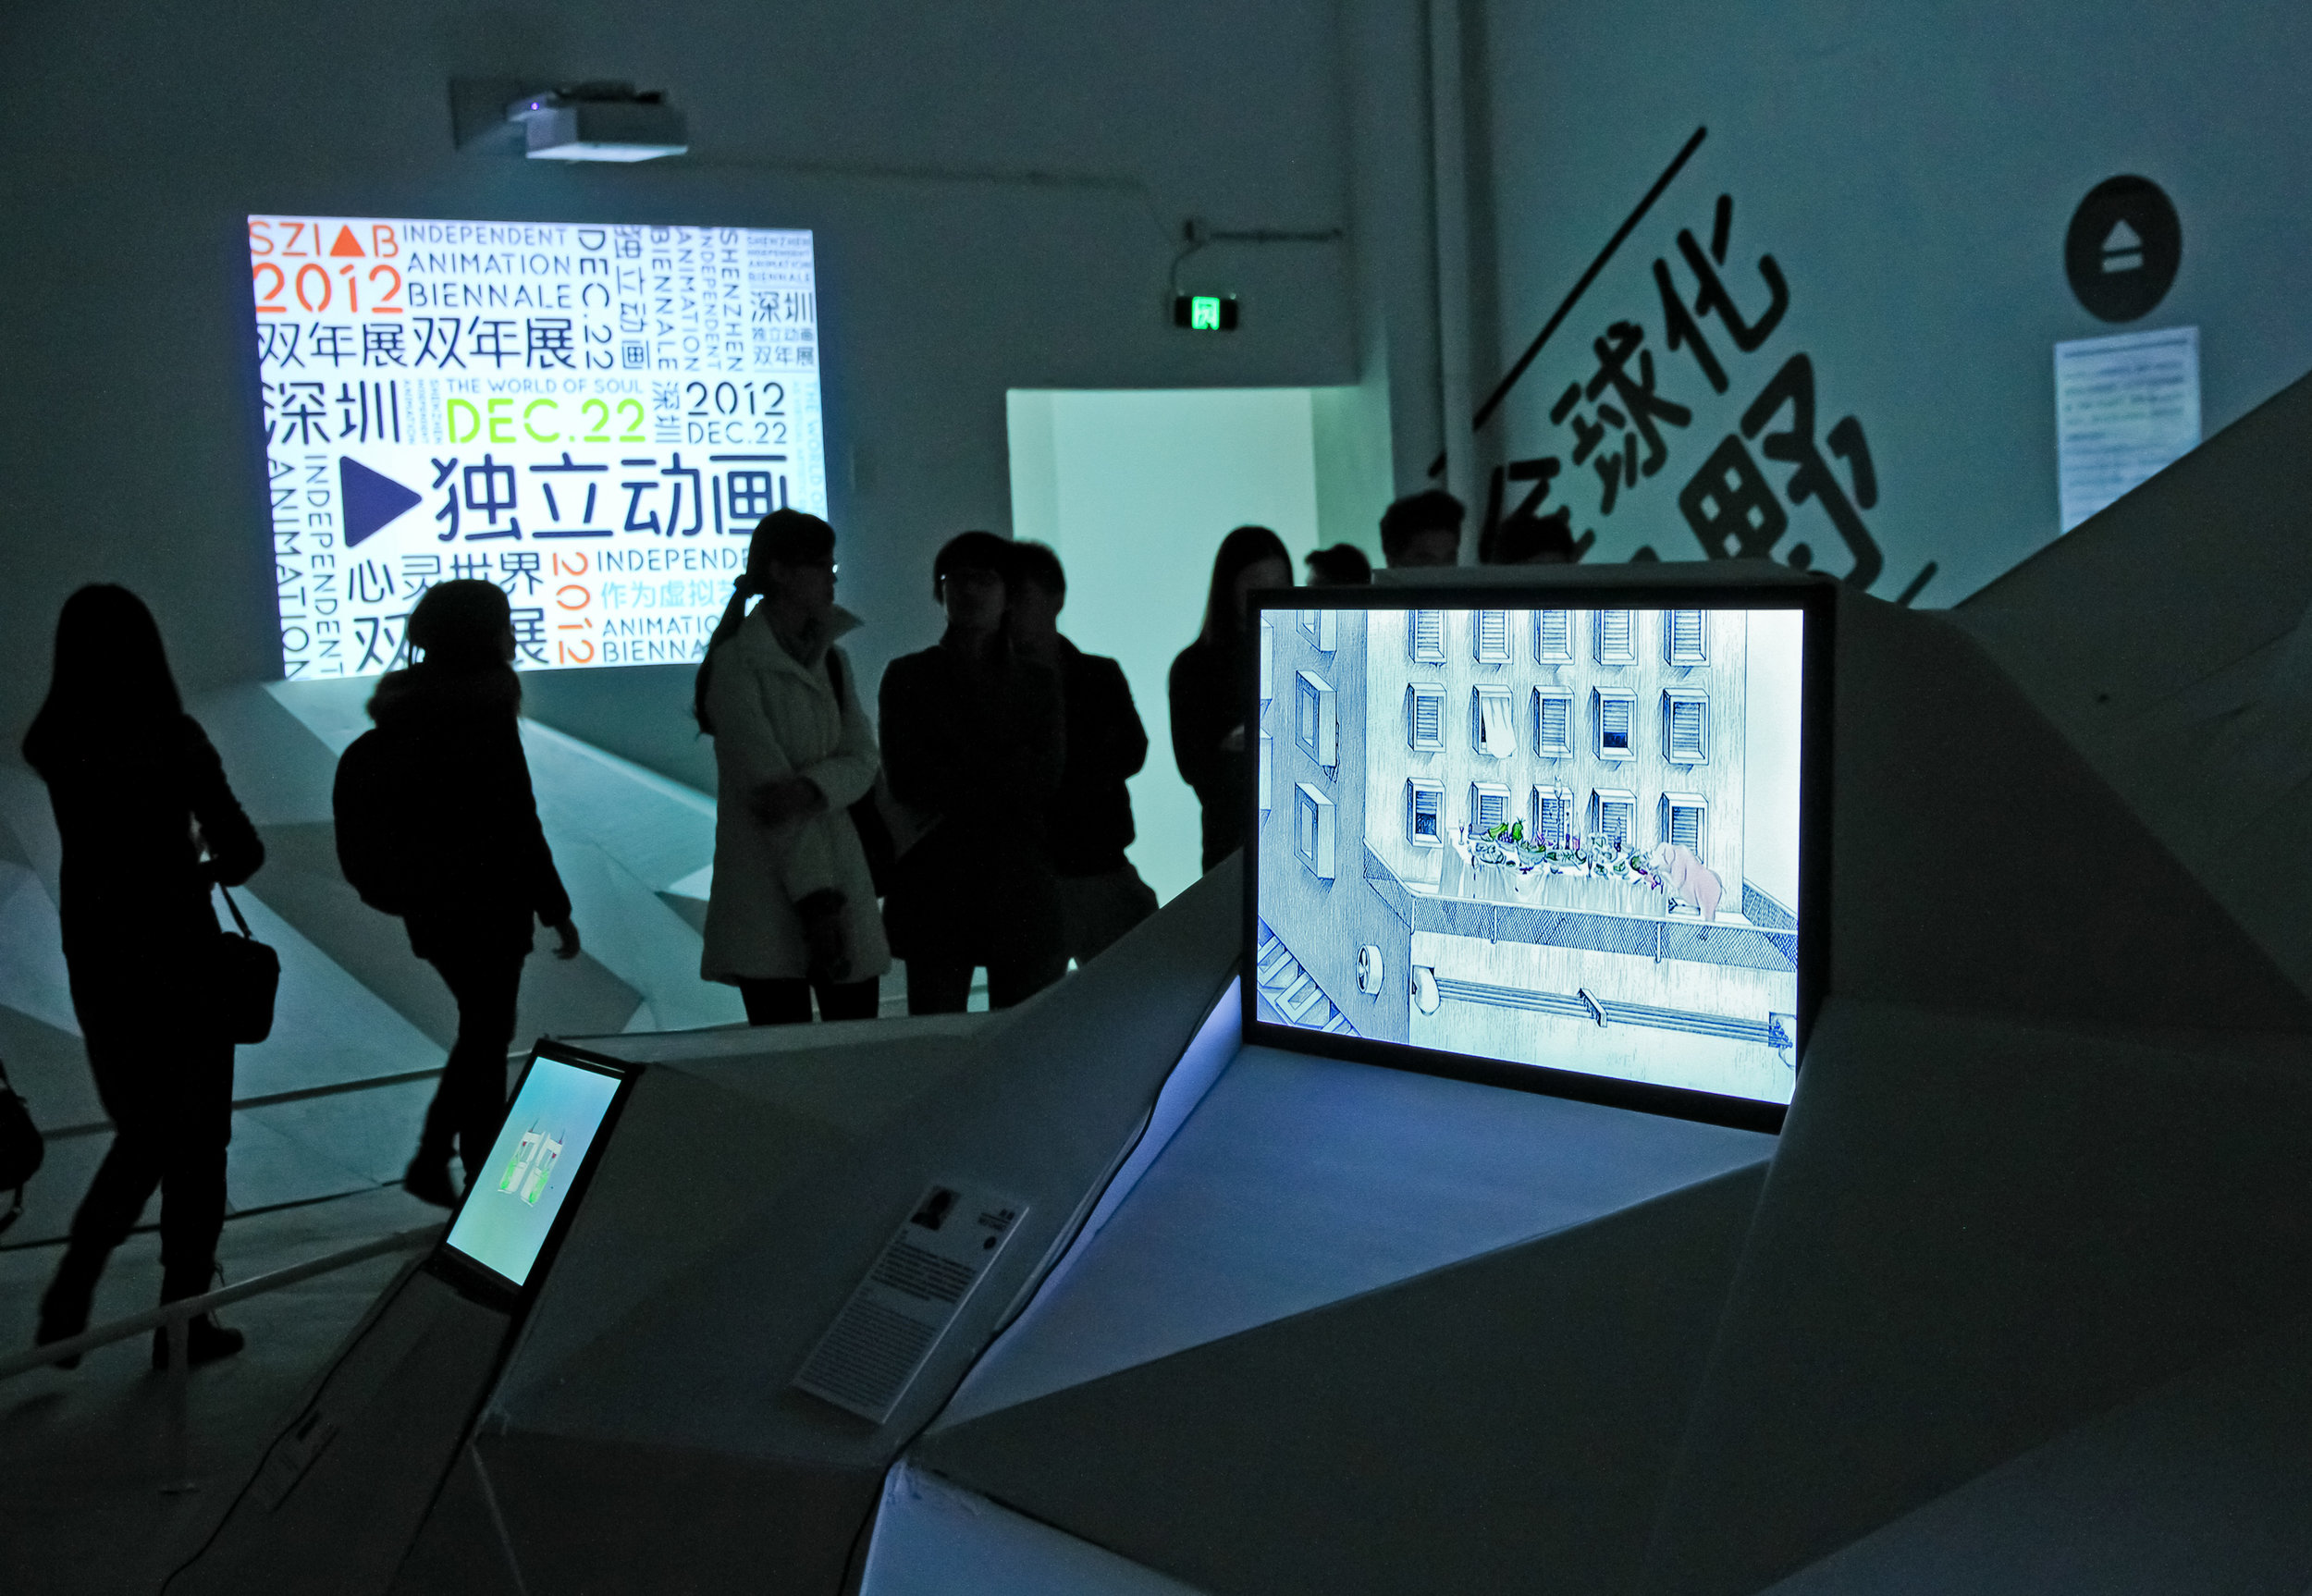 "首届深圳独立动画双年展,主题为""心灵世界:作为虚拟艺术工程"" - First Shenzhen Independent Animation Biennale 2012 